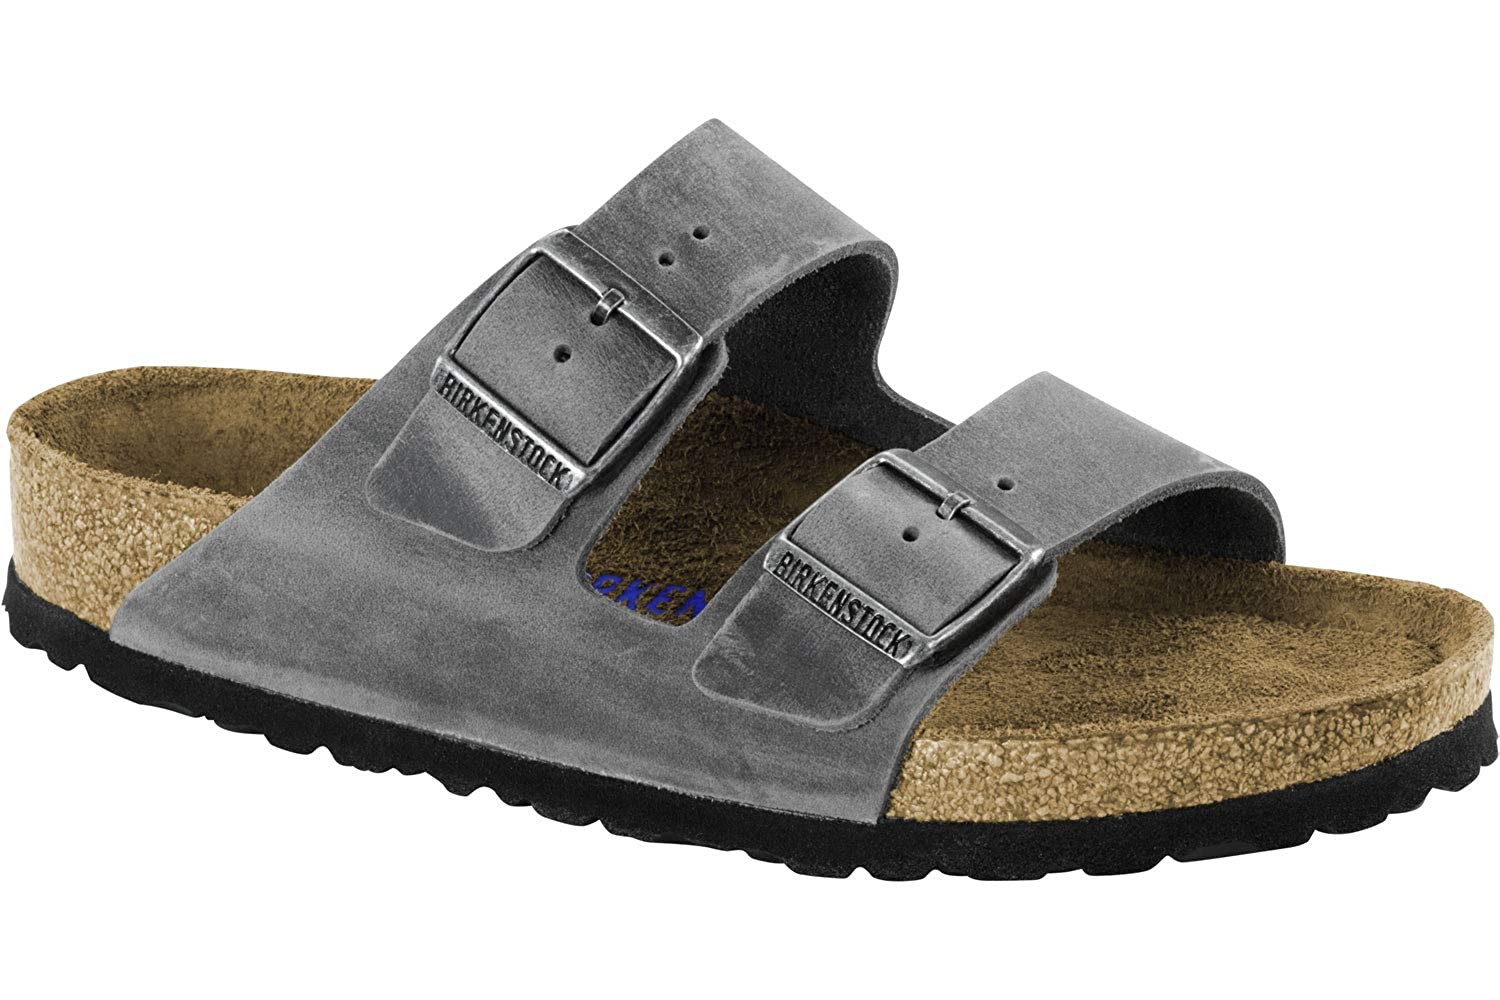 57ed5db051a462 Birkenstock Women s Arizona Open-Toe Sandals  Amazon.co.uk  Shoes   Bags